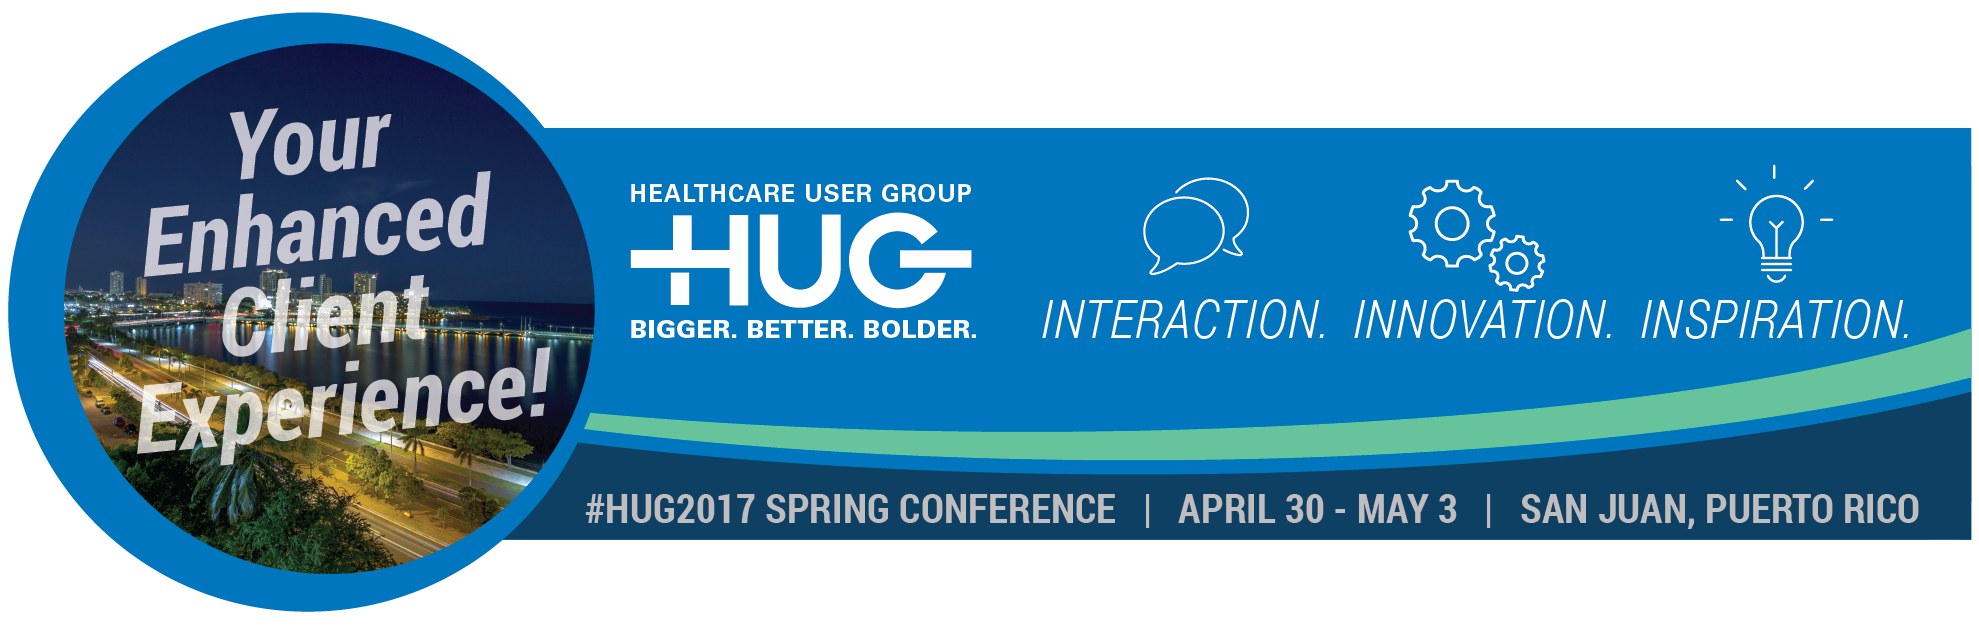 2017 Spring Healthcare User Group Conference